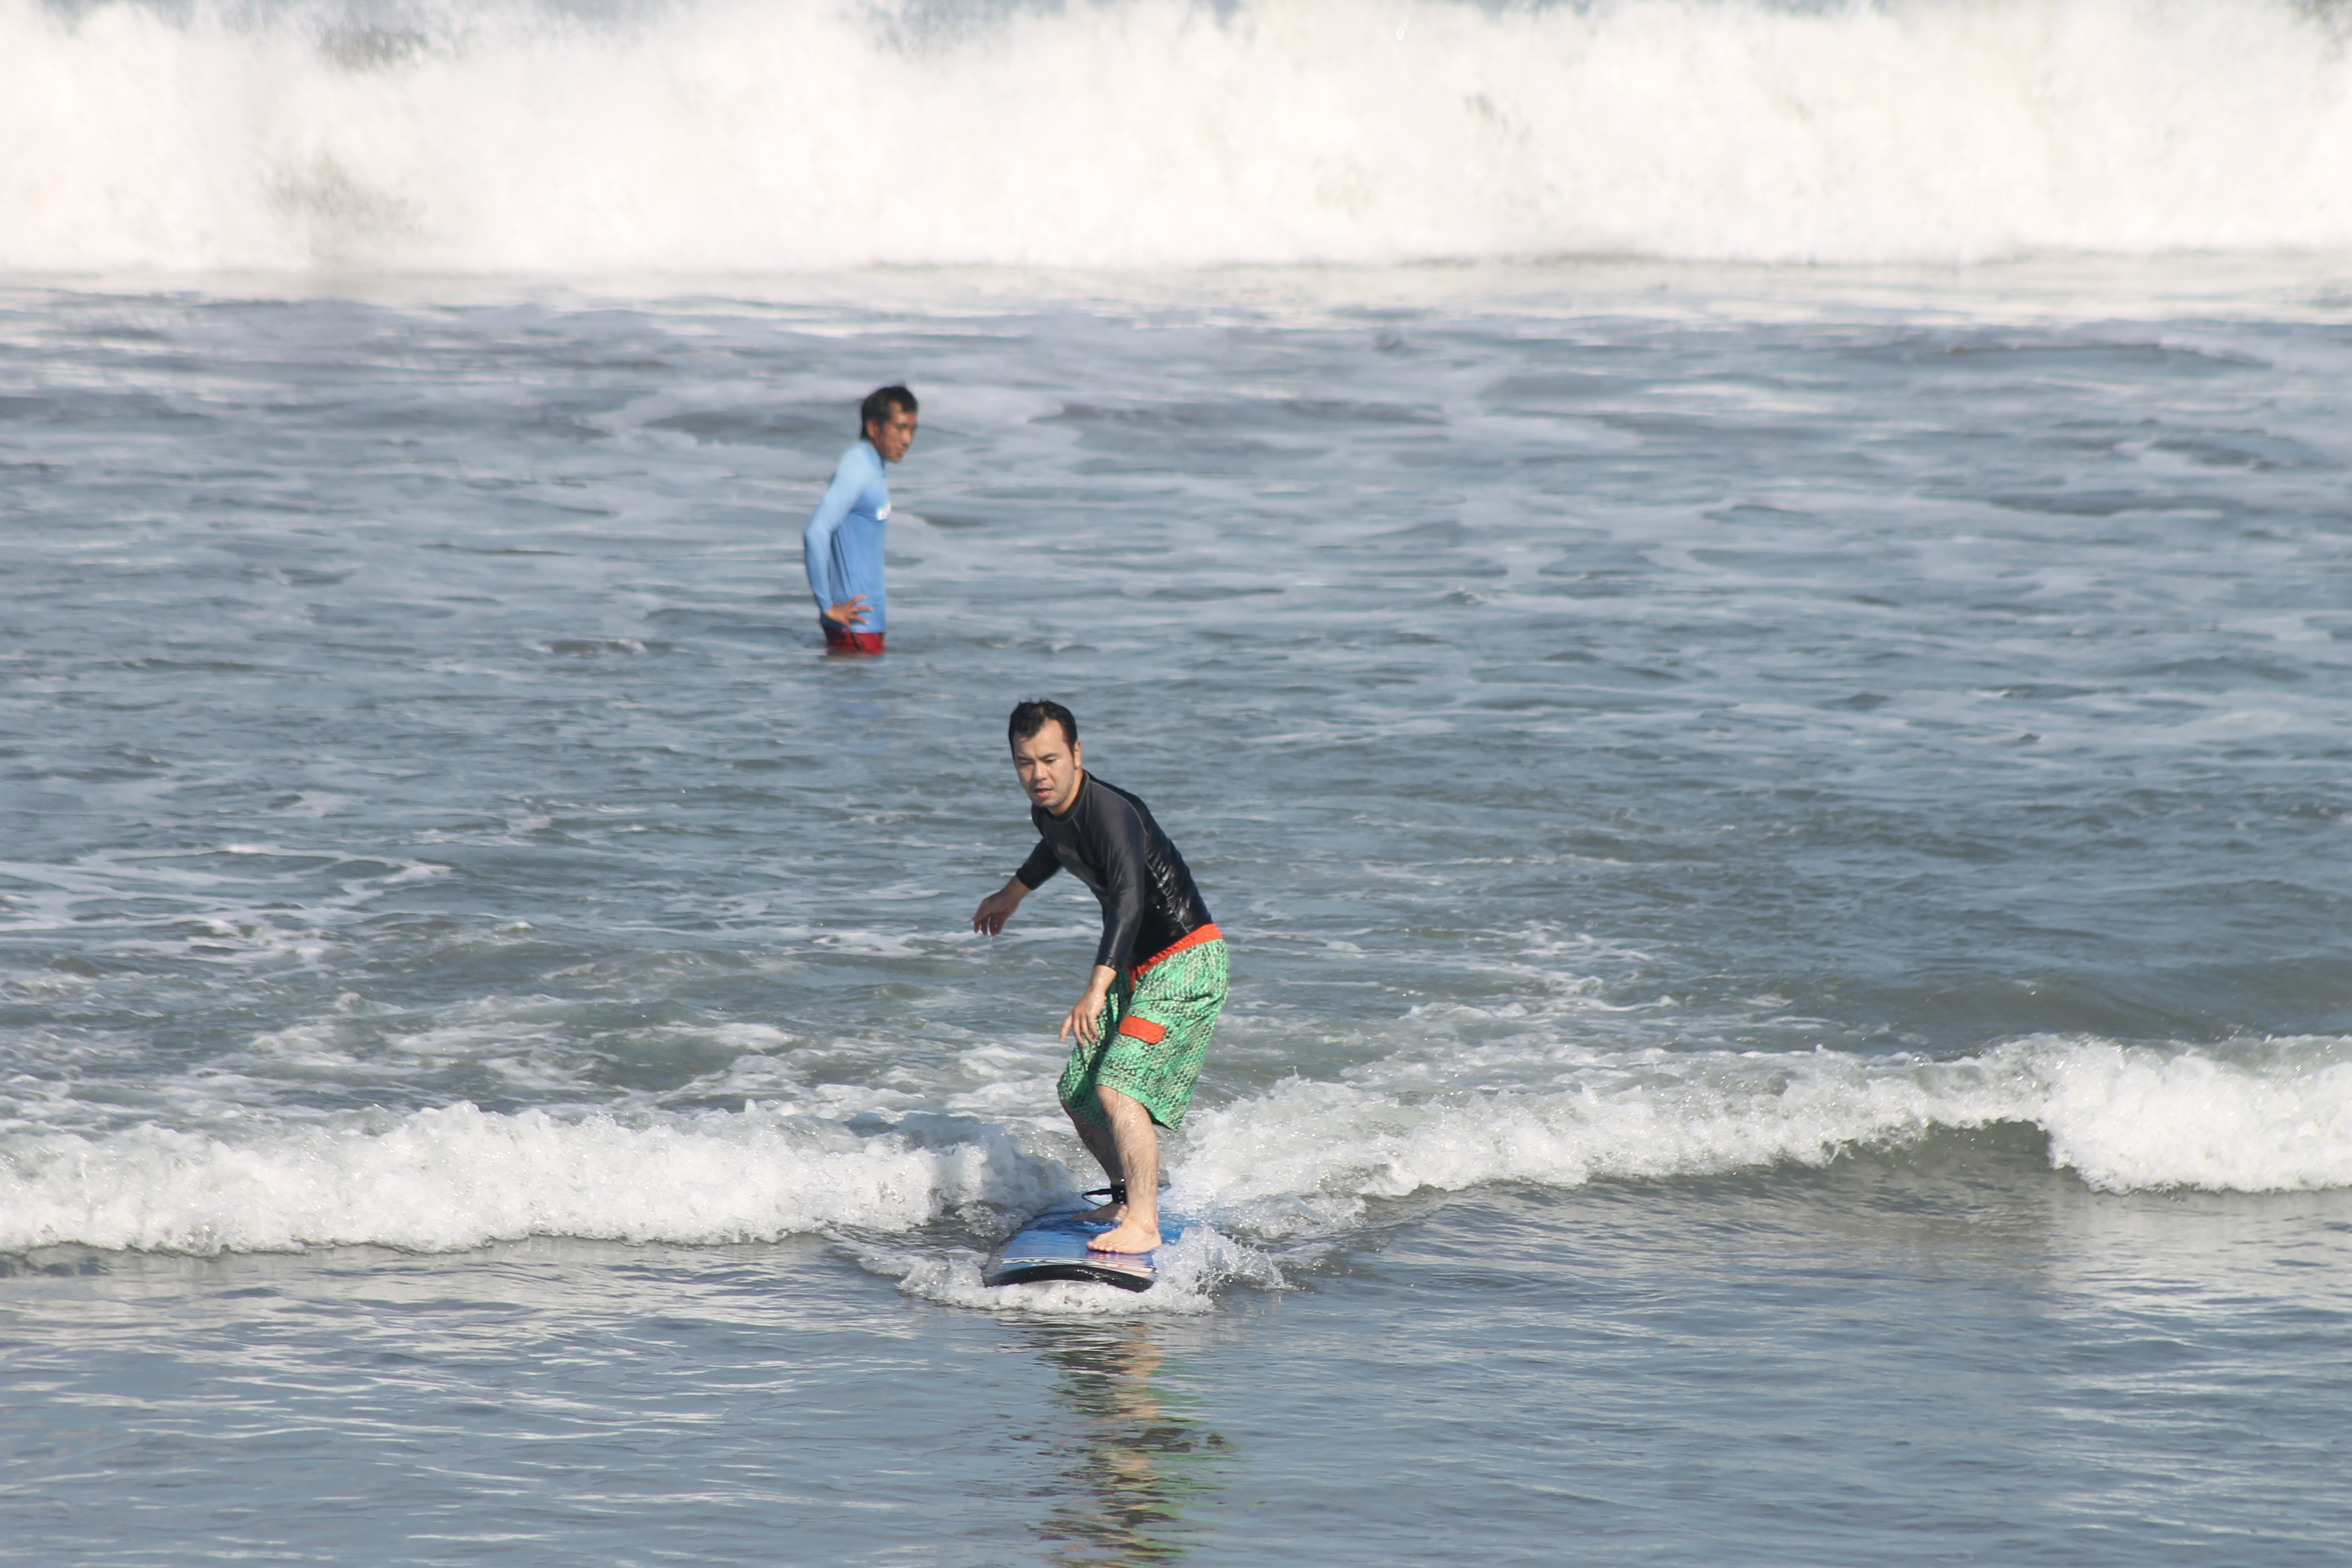 Private surf lessons in Bali for all ages - Enjoy Wipeout